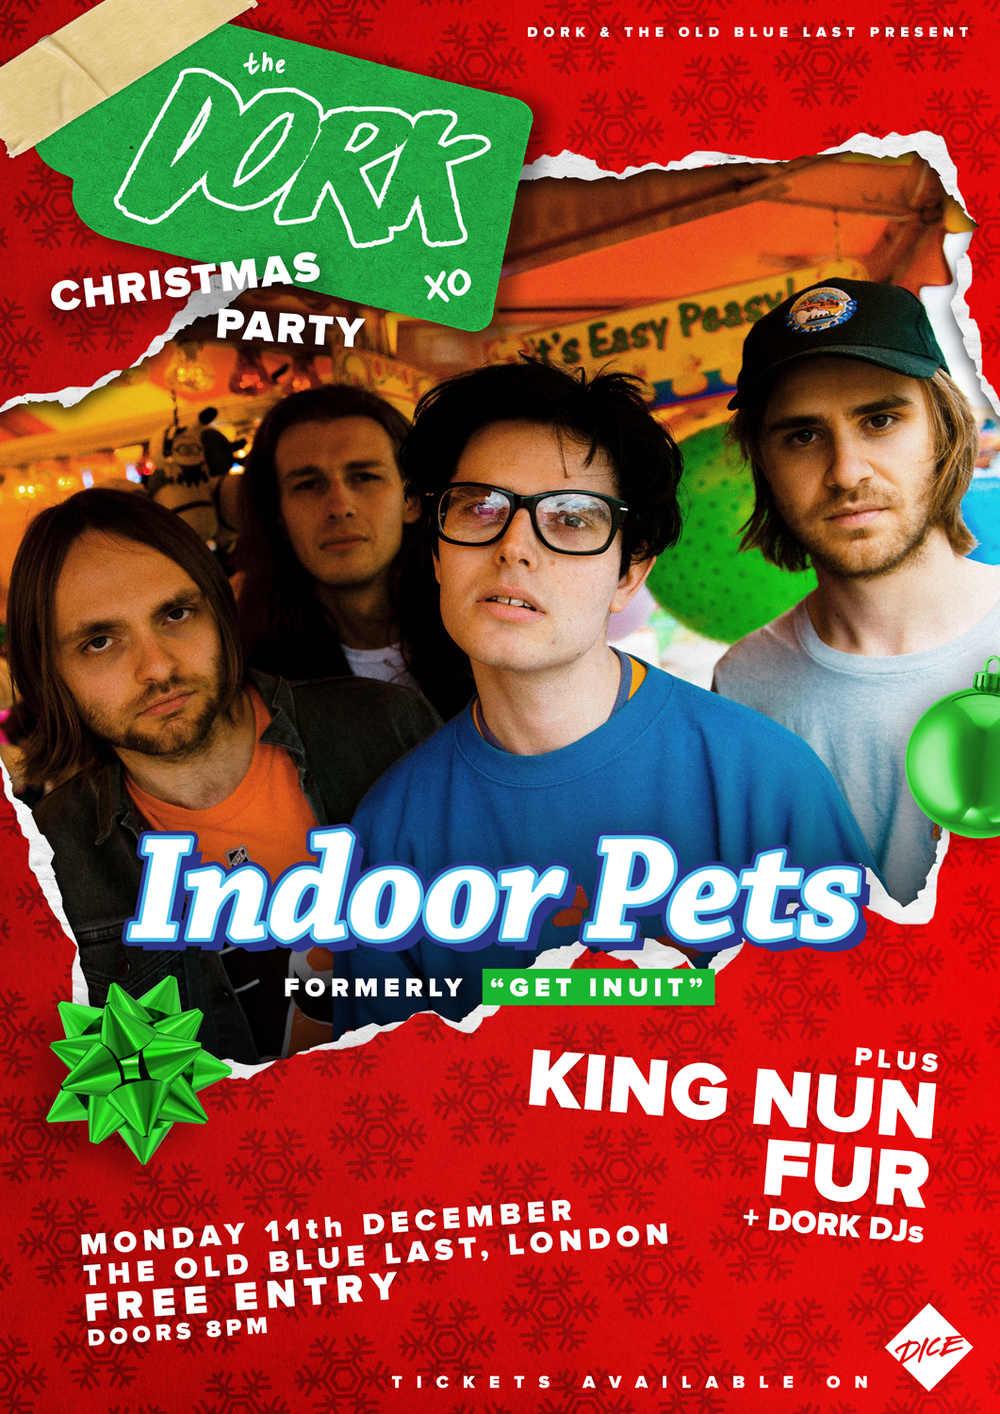 DORK_magazine_christmas-party_events-gig-poster.png